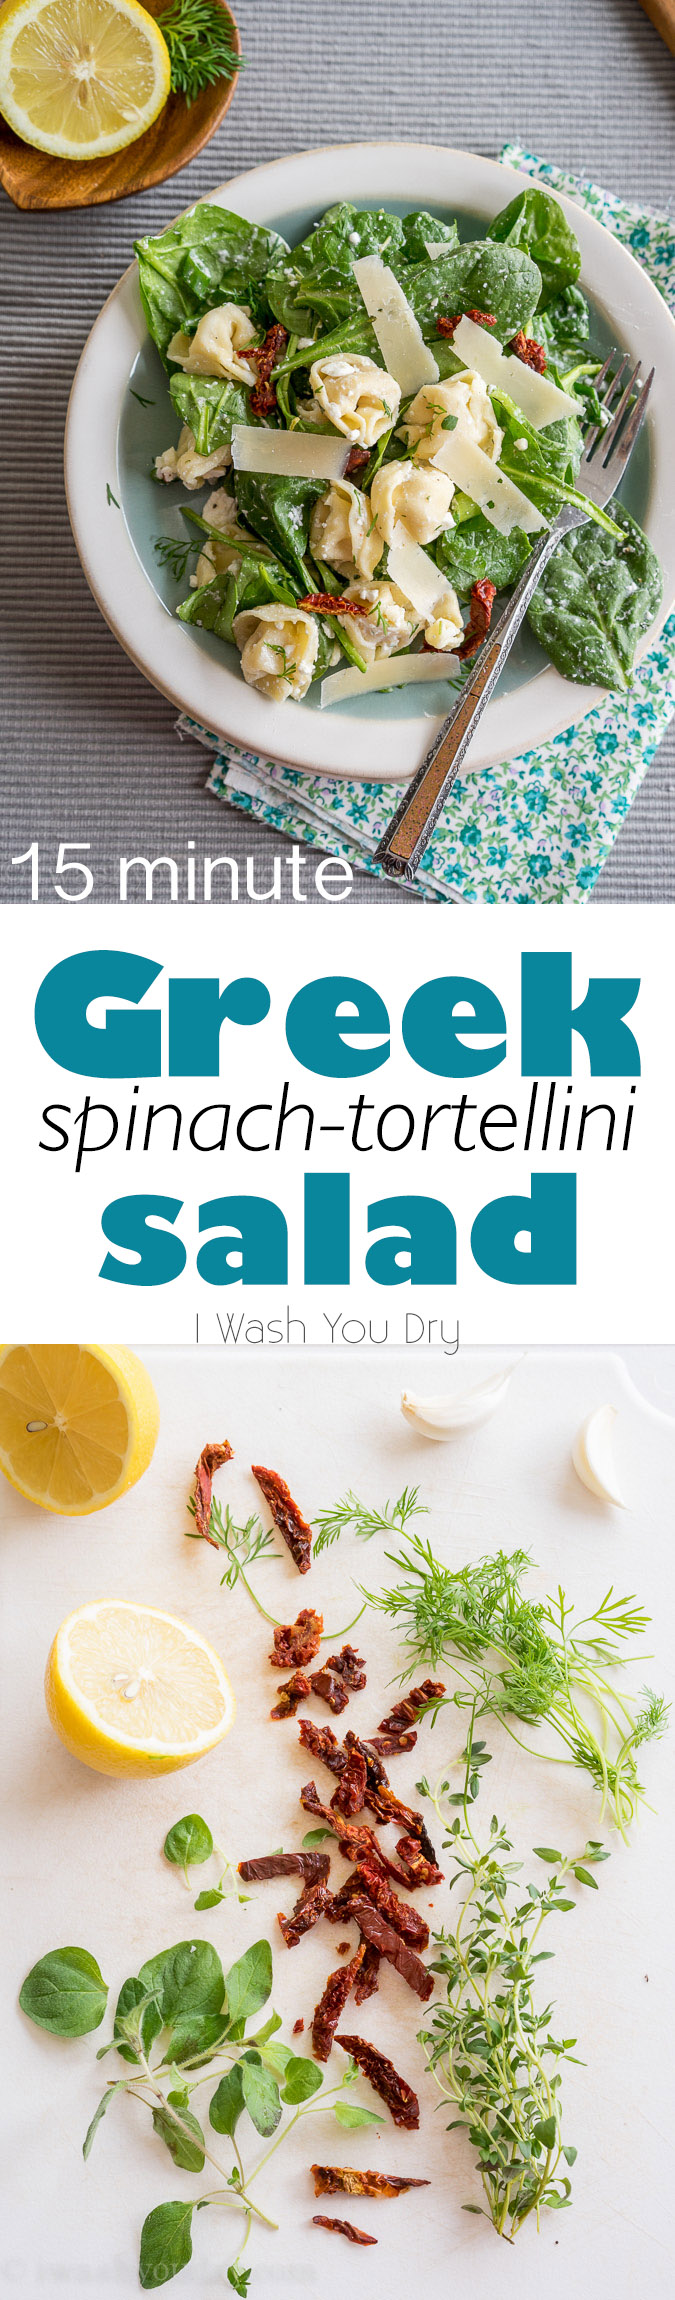 Love this quick and easy Greek Spinach-Tortellini Salad. The flavors are all great together!